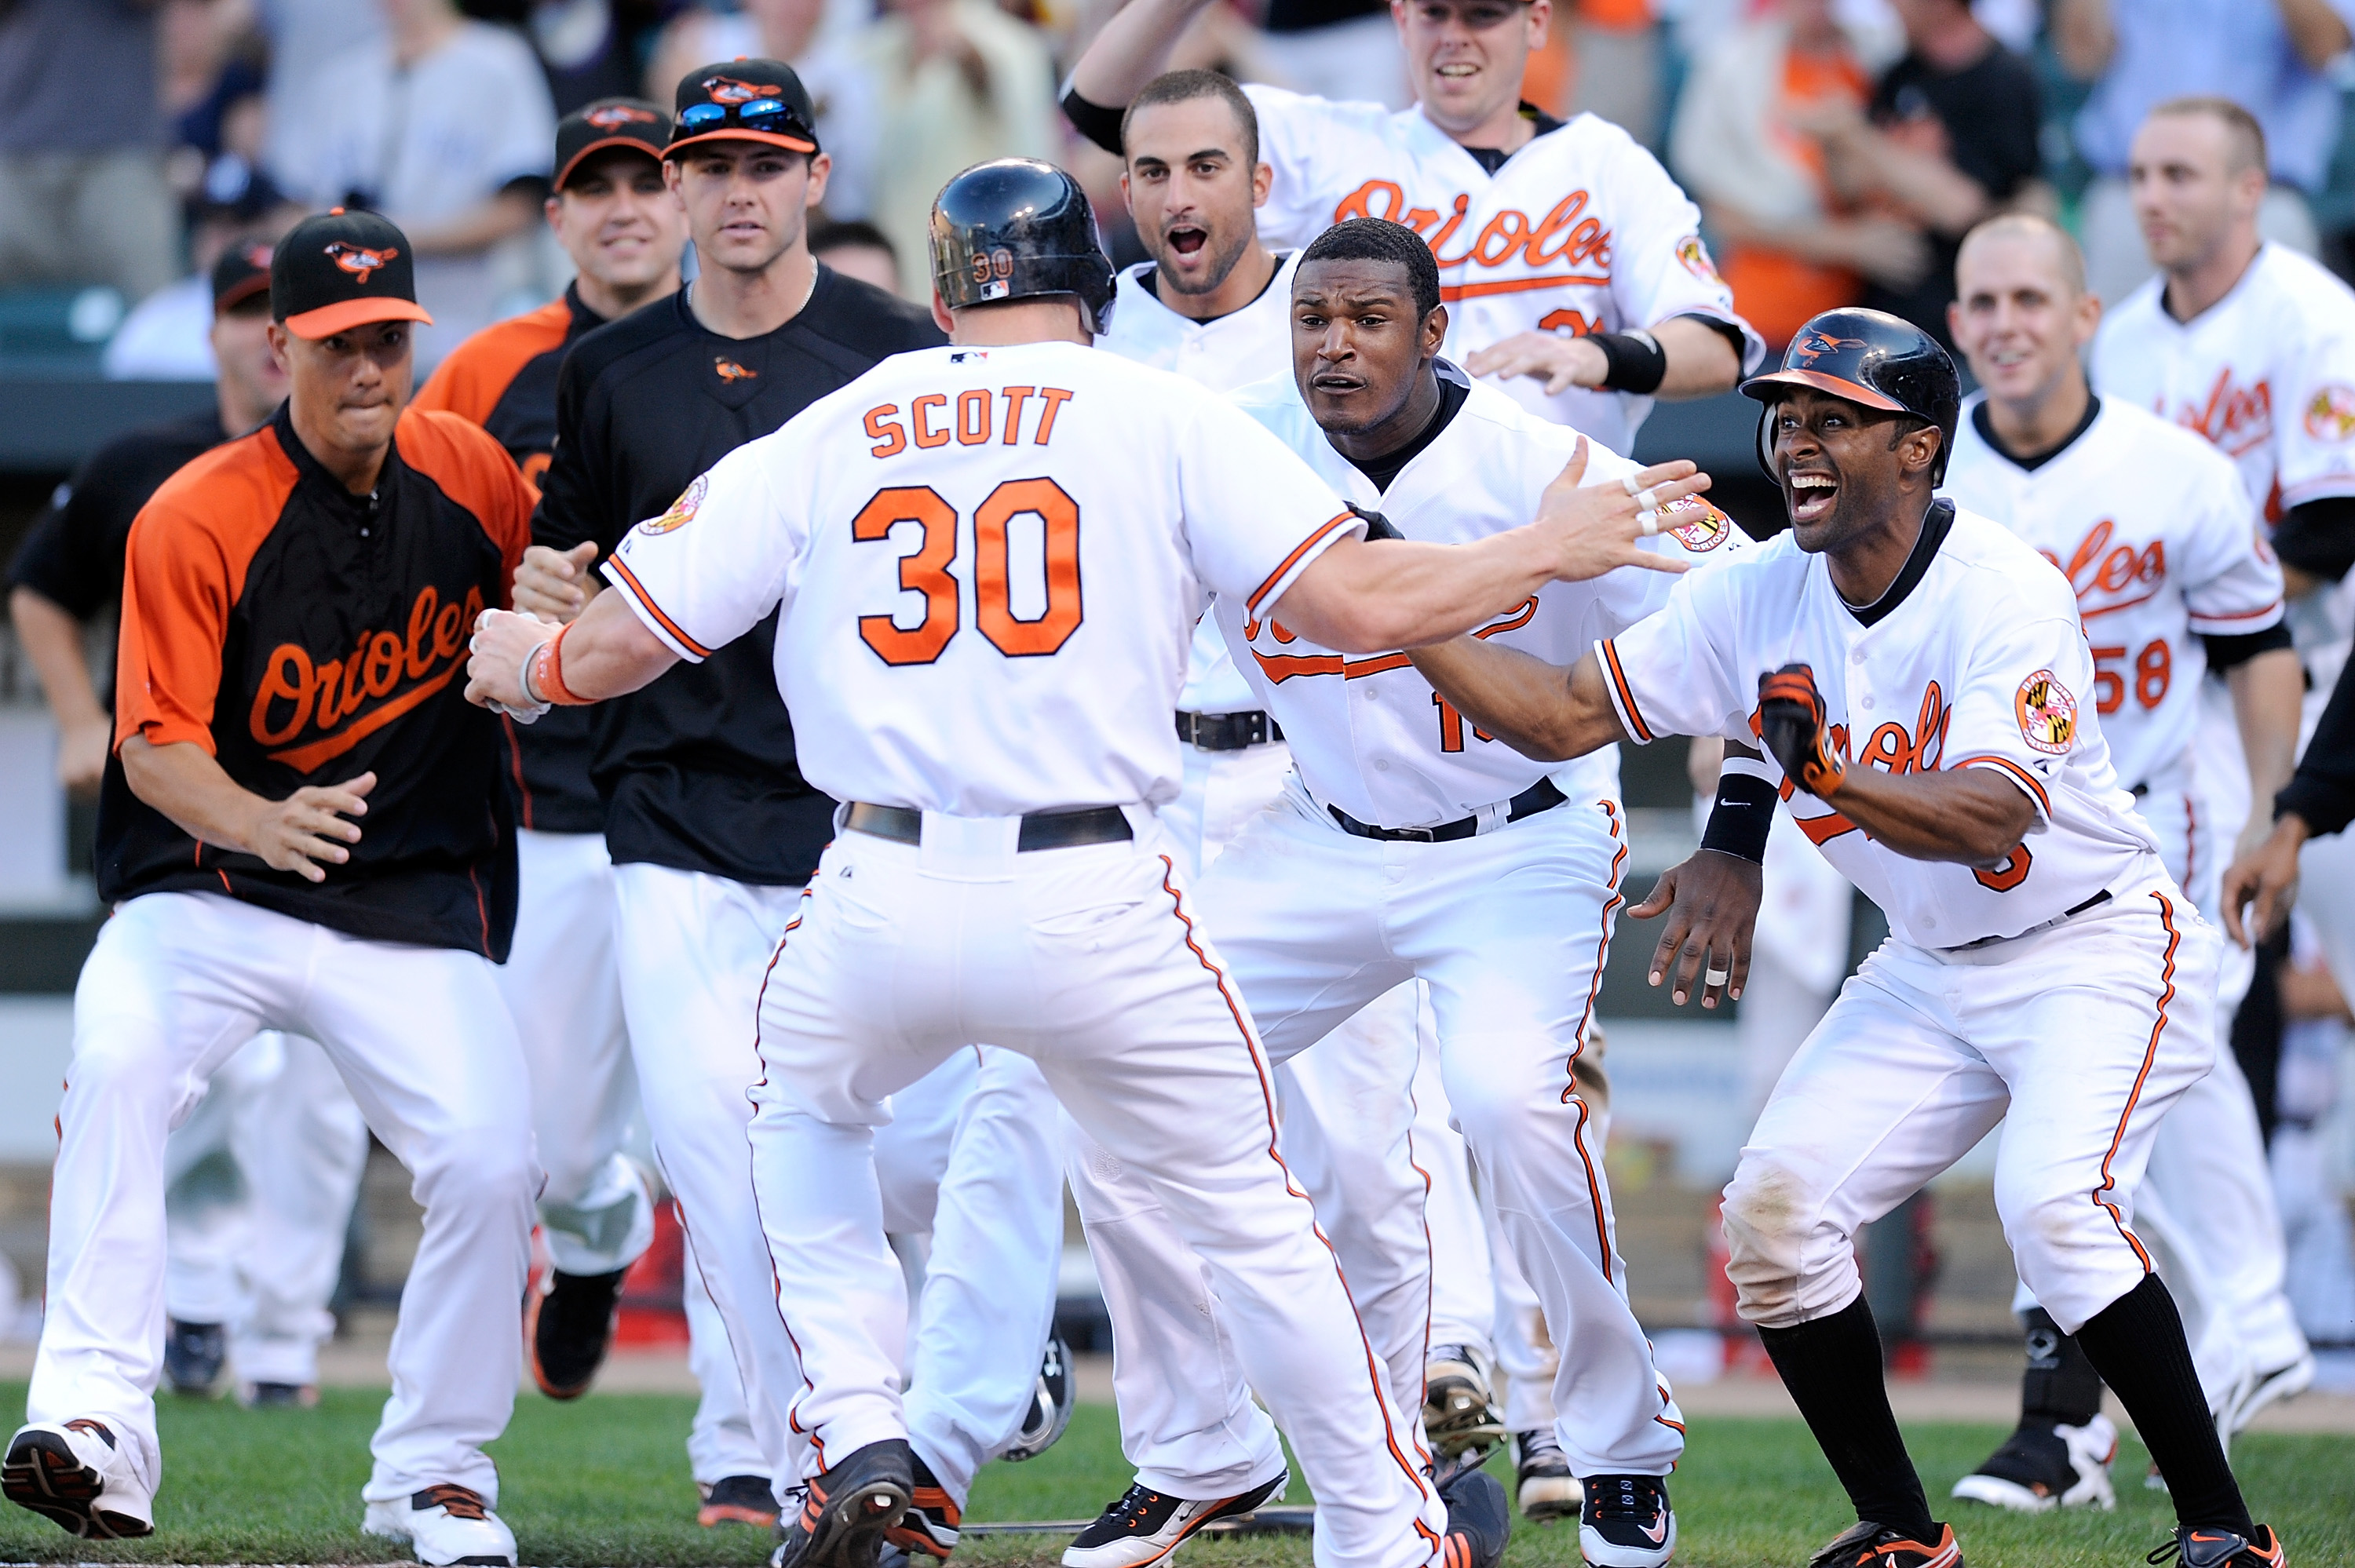 BALTIMORE - SEPTEMBER 19:  Luke Scott #30 of the Baltimore Orioles is congratulated by Adam Jones #10, Corey Patterson #6, Nick Markakis #21 and other teammates after scoring the game winning run in the eleventh inning against the New York Yankees at Camd